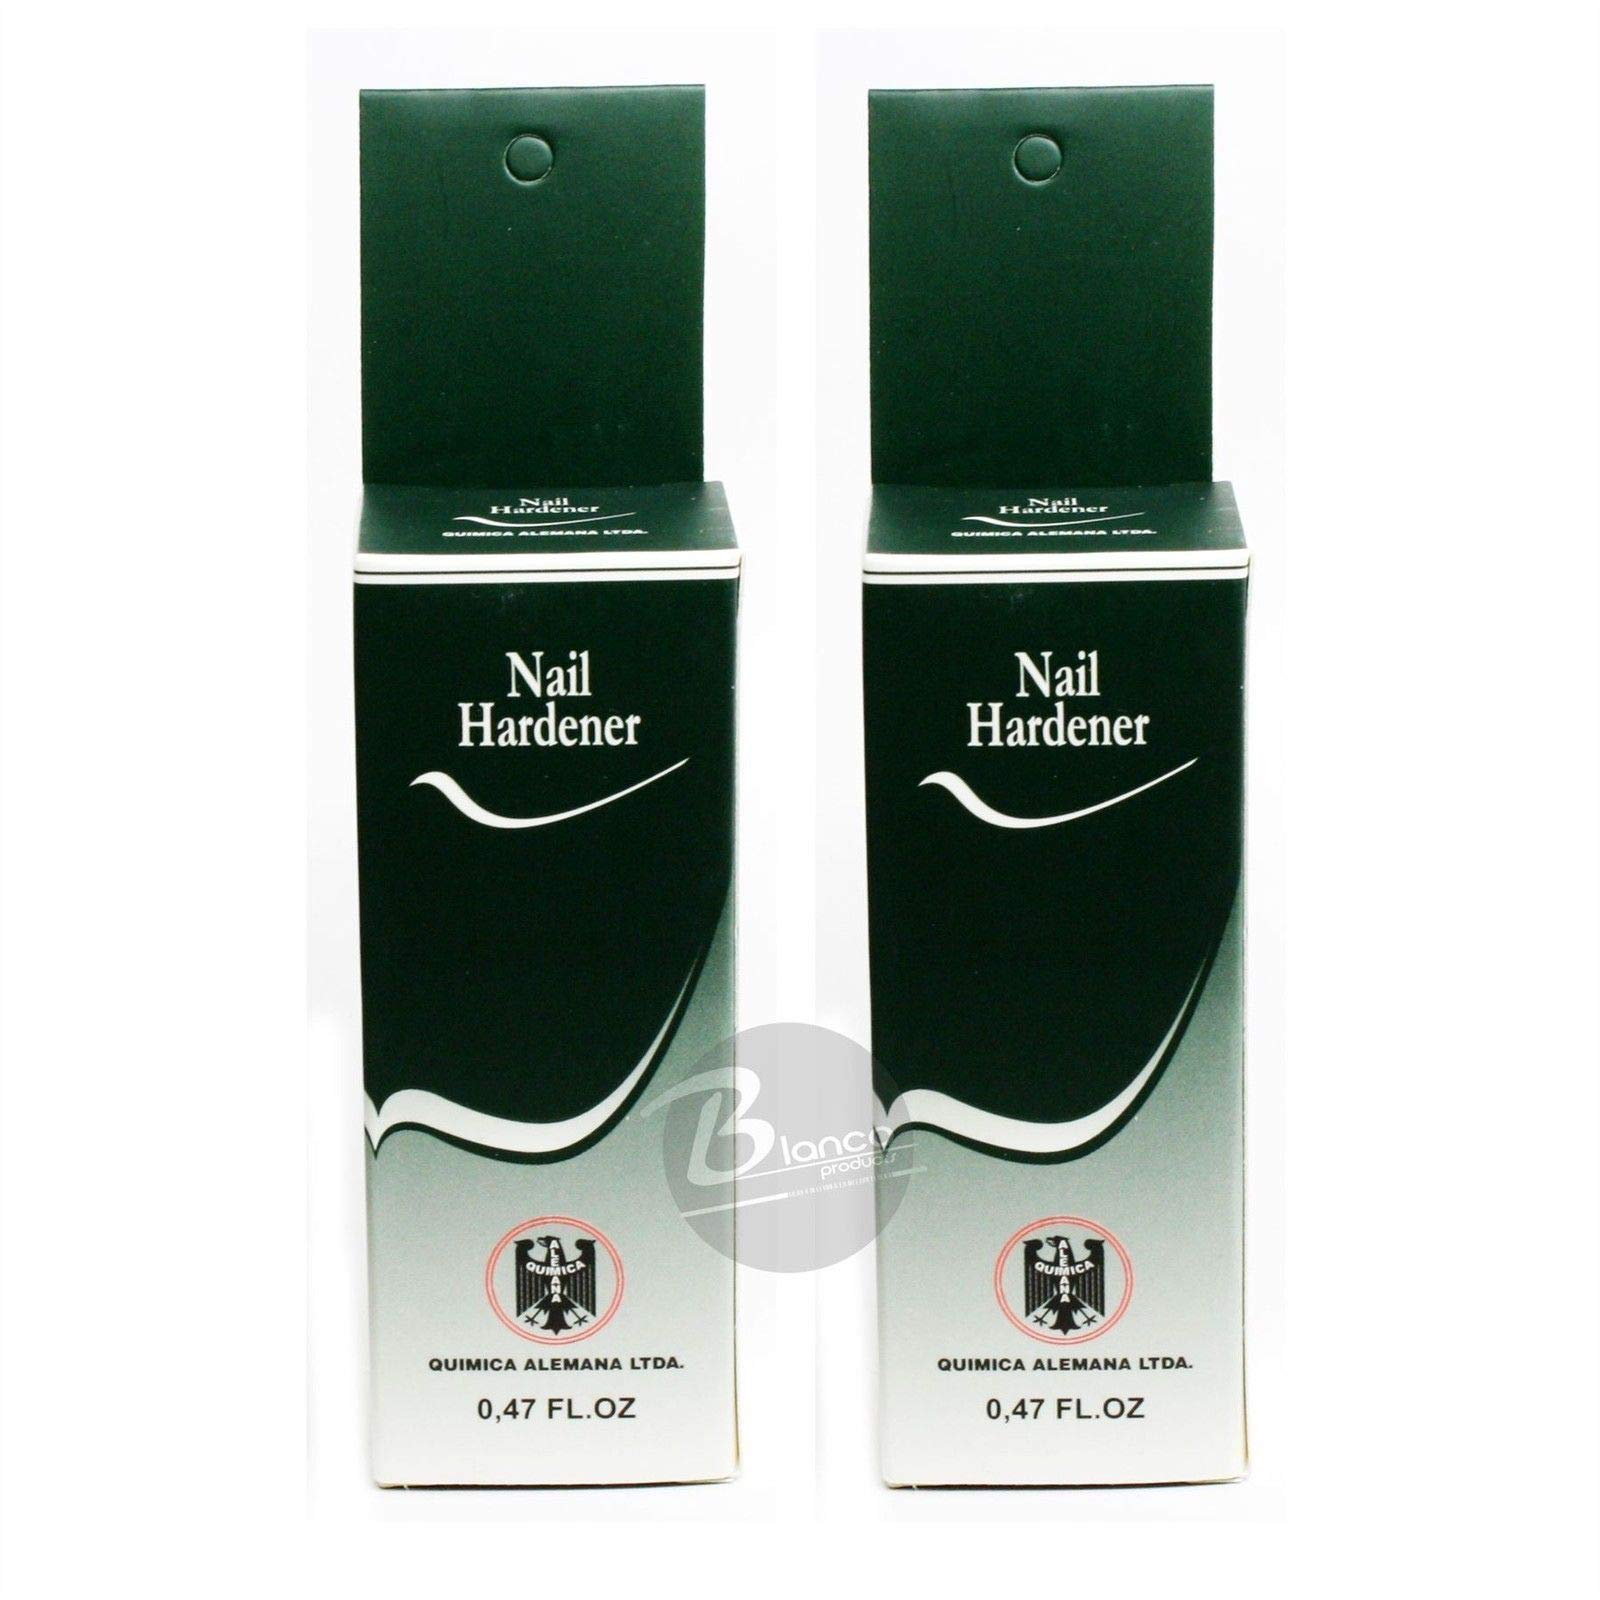 Quimica Alemana Nail Hardener 0.47 Fl Oz Pack of 2 by Quimica Alemana